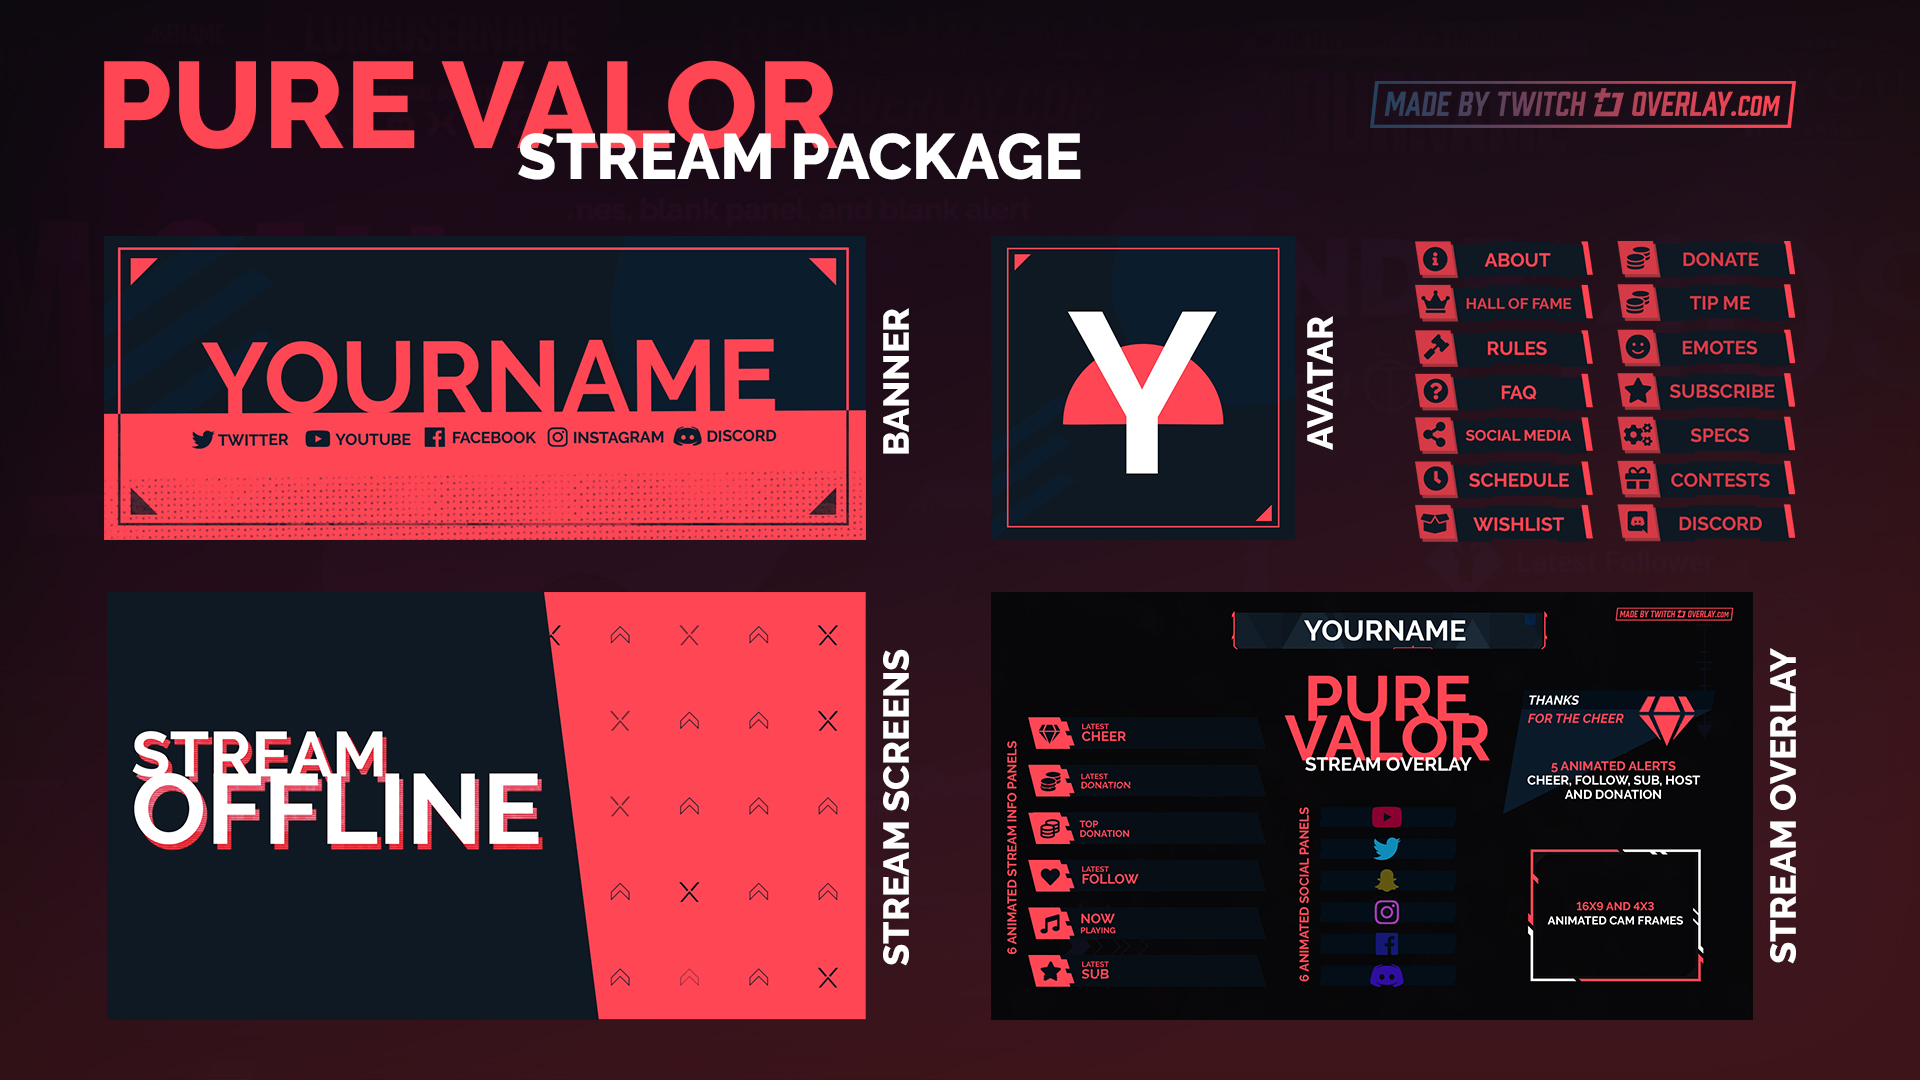 valorant stream package - Twitch Overlay